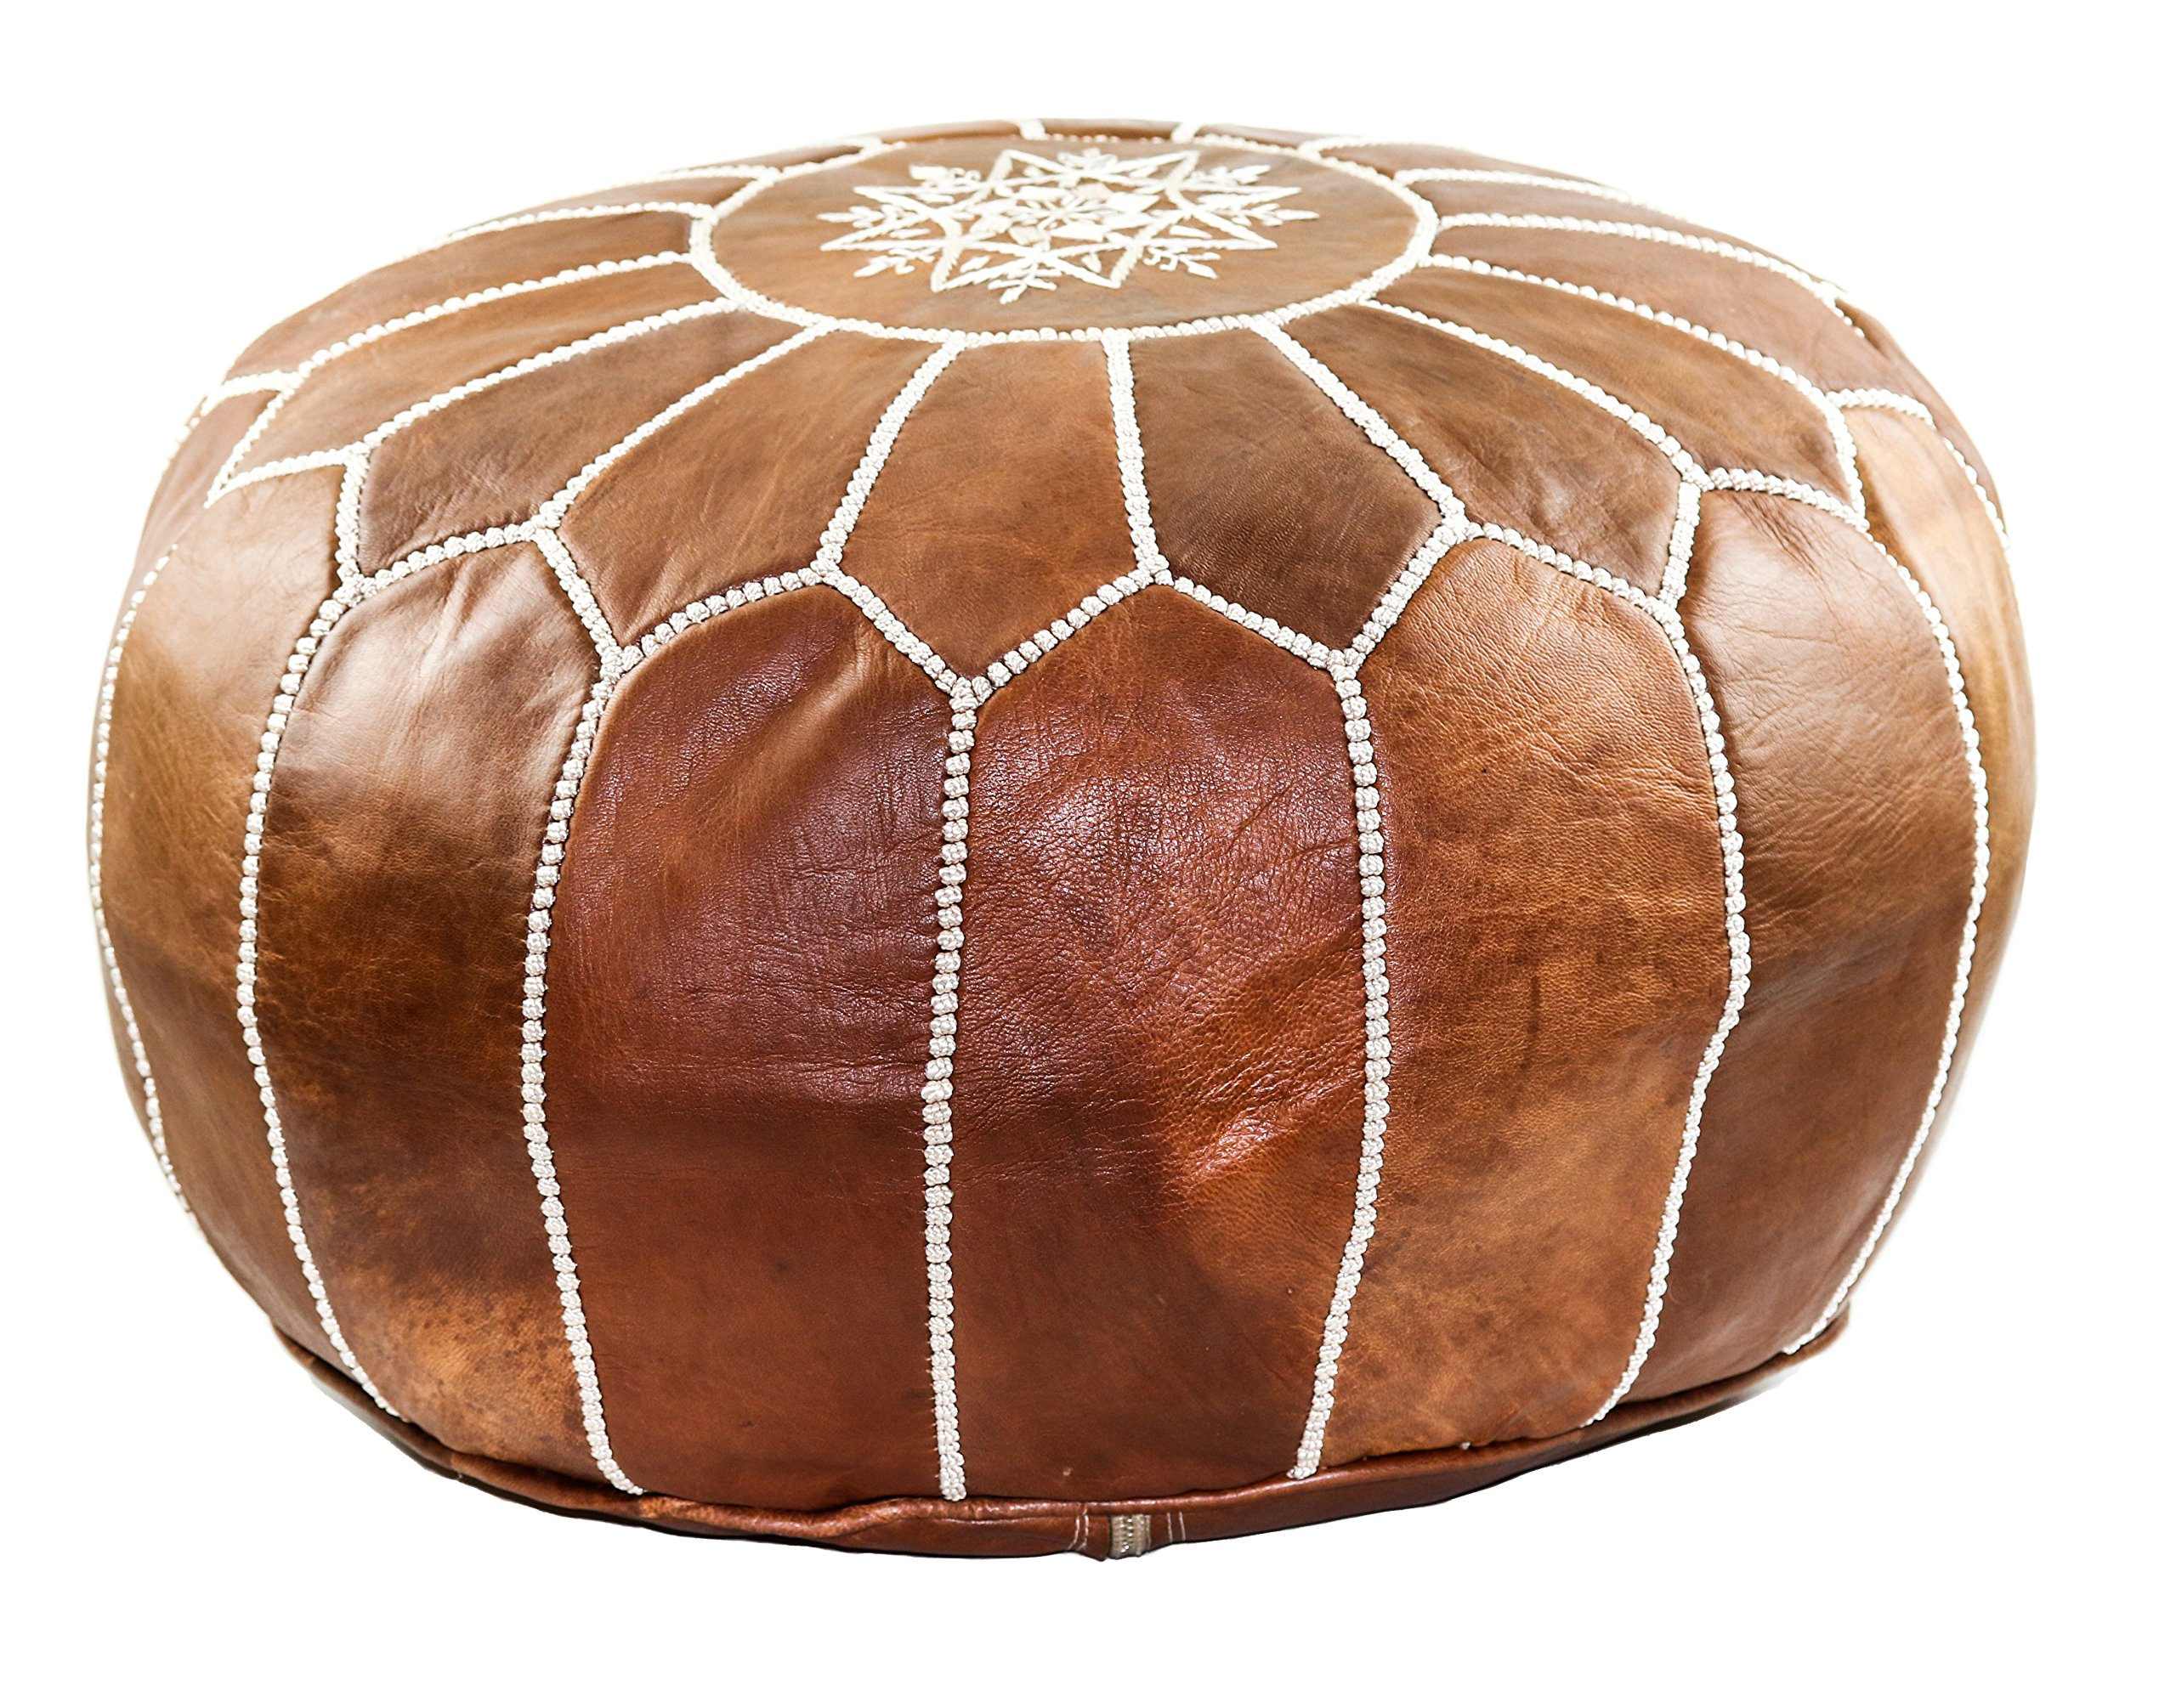 GRAN Stuffed Handmade Leather Moroccan Pouf Footstool Ottoman | Brown Genuine Leather with Hand Embroidered White Stitching